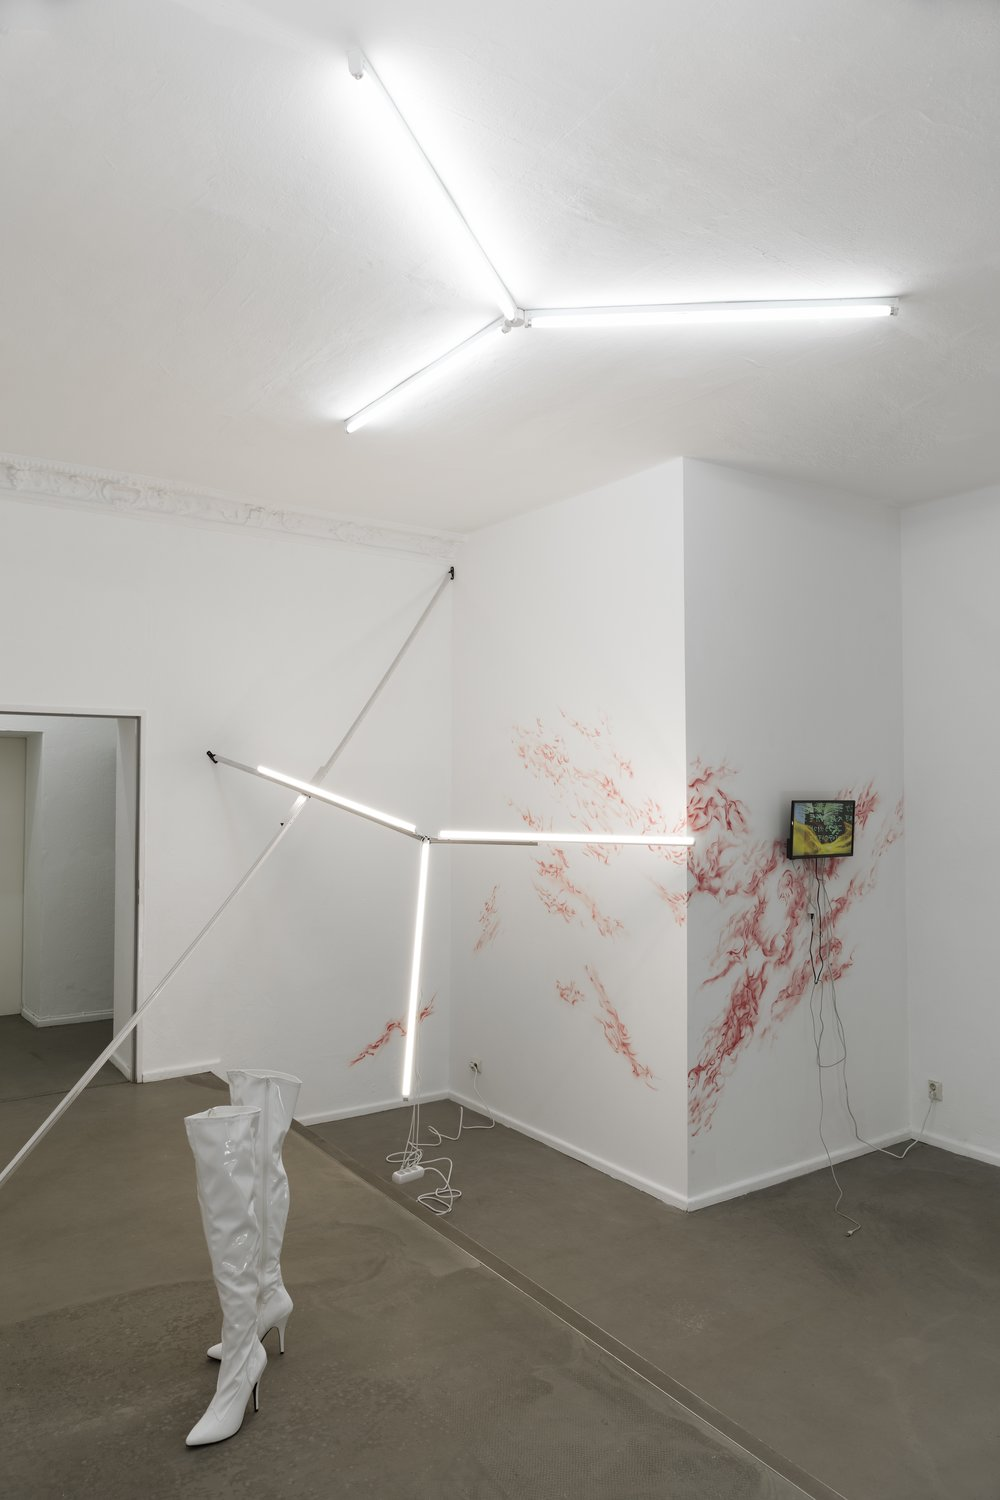 Exhibition view at Display // There - Valentin Dommanget